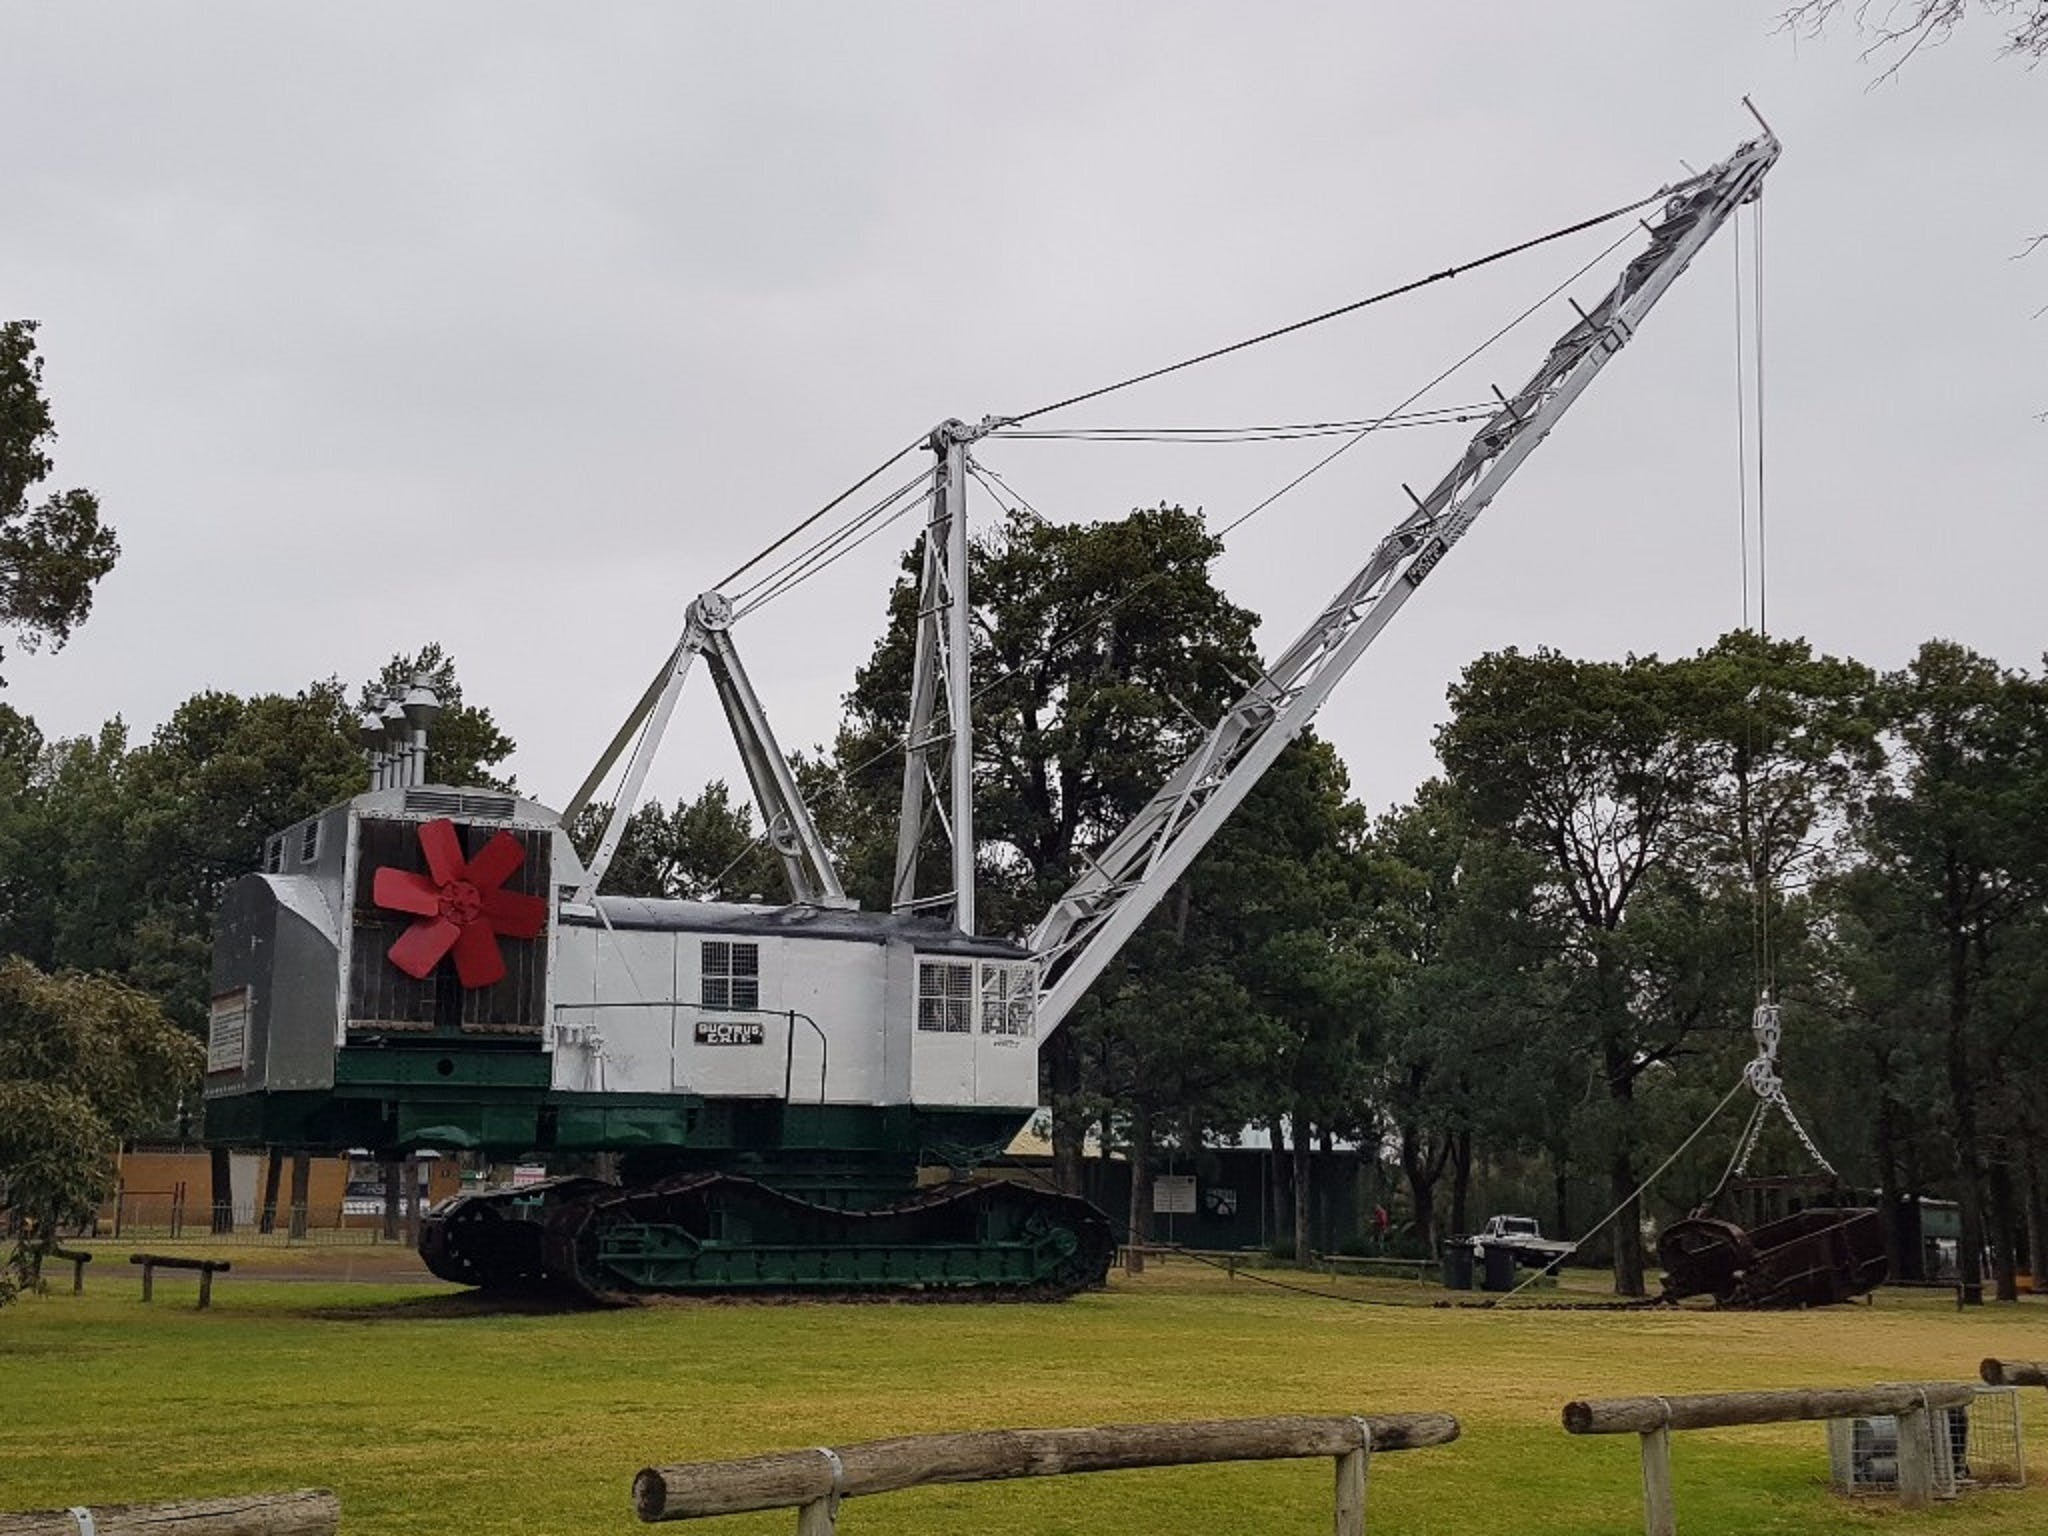 Coleambally Bucyrus Erie Dragline Excavator - Broome Tourism